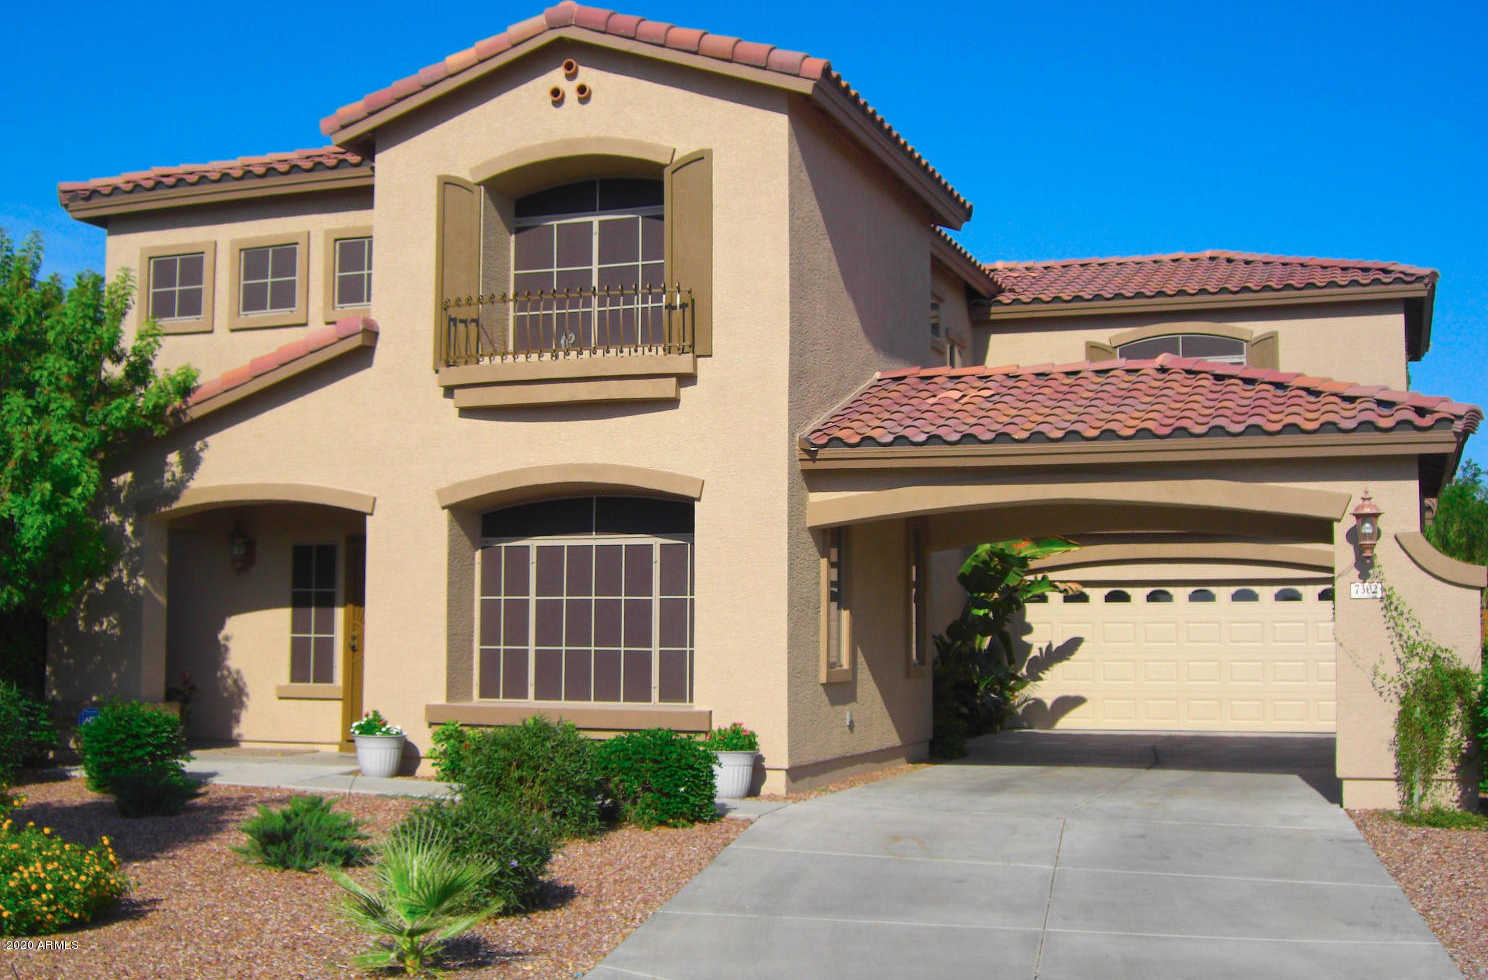 $395,000 - 4Br/3Ba - Home for Sale in Rovey Farm Estates South, Glendale